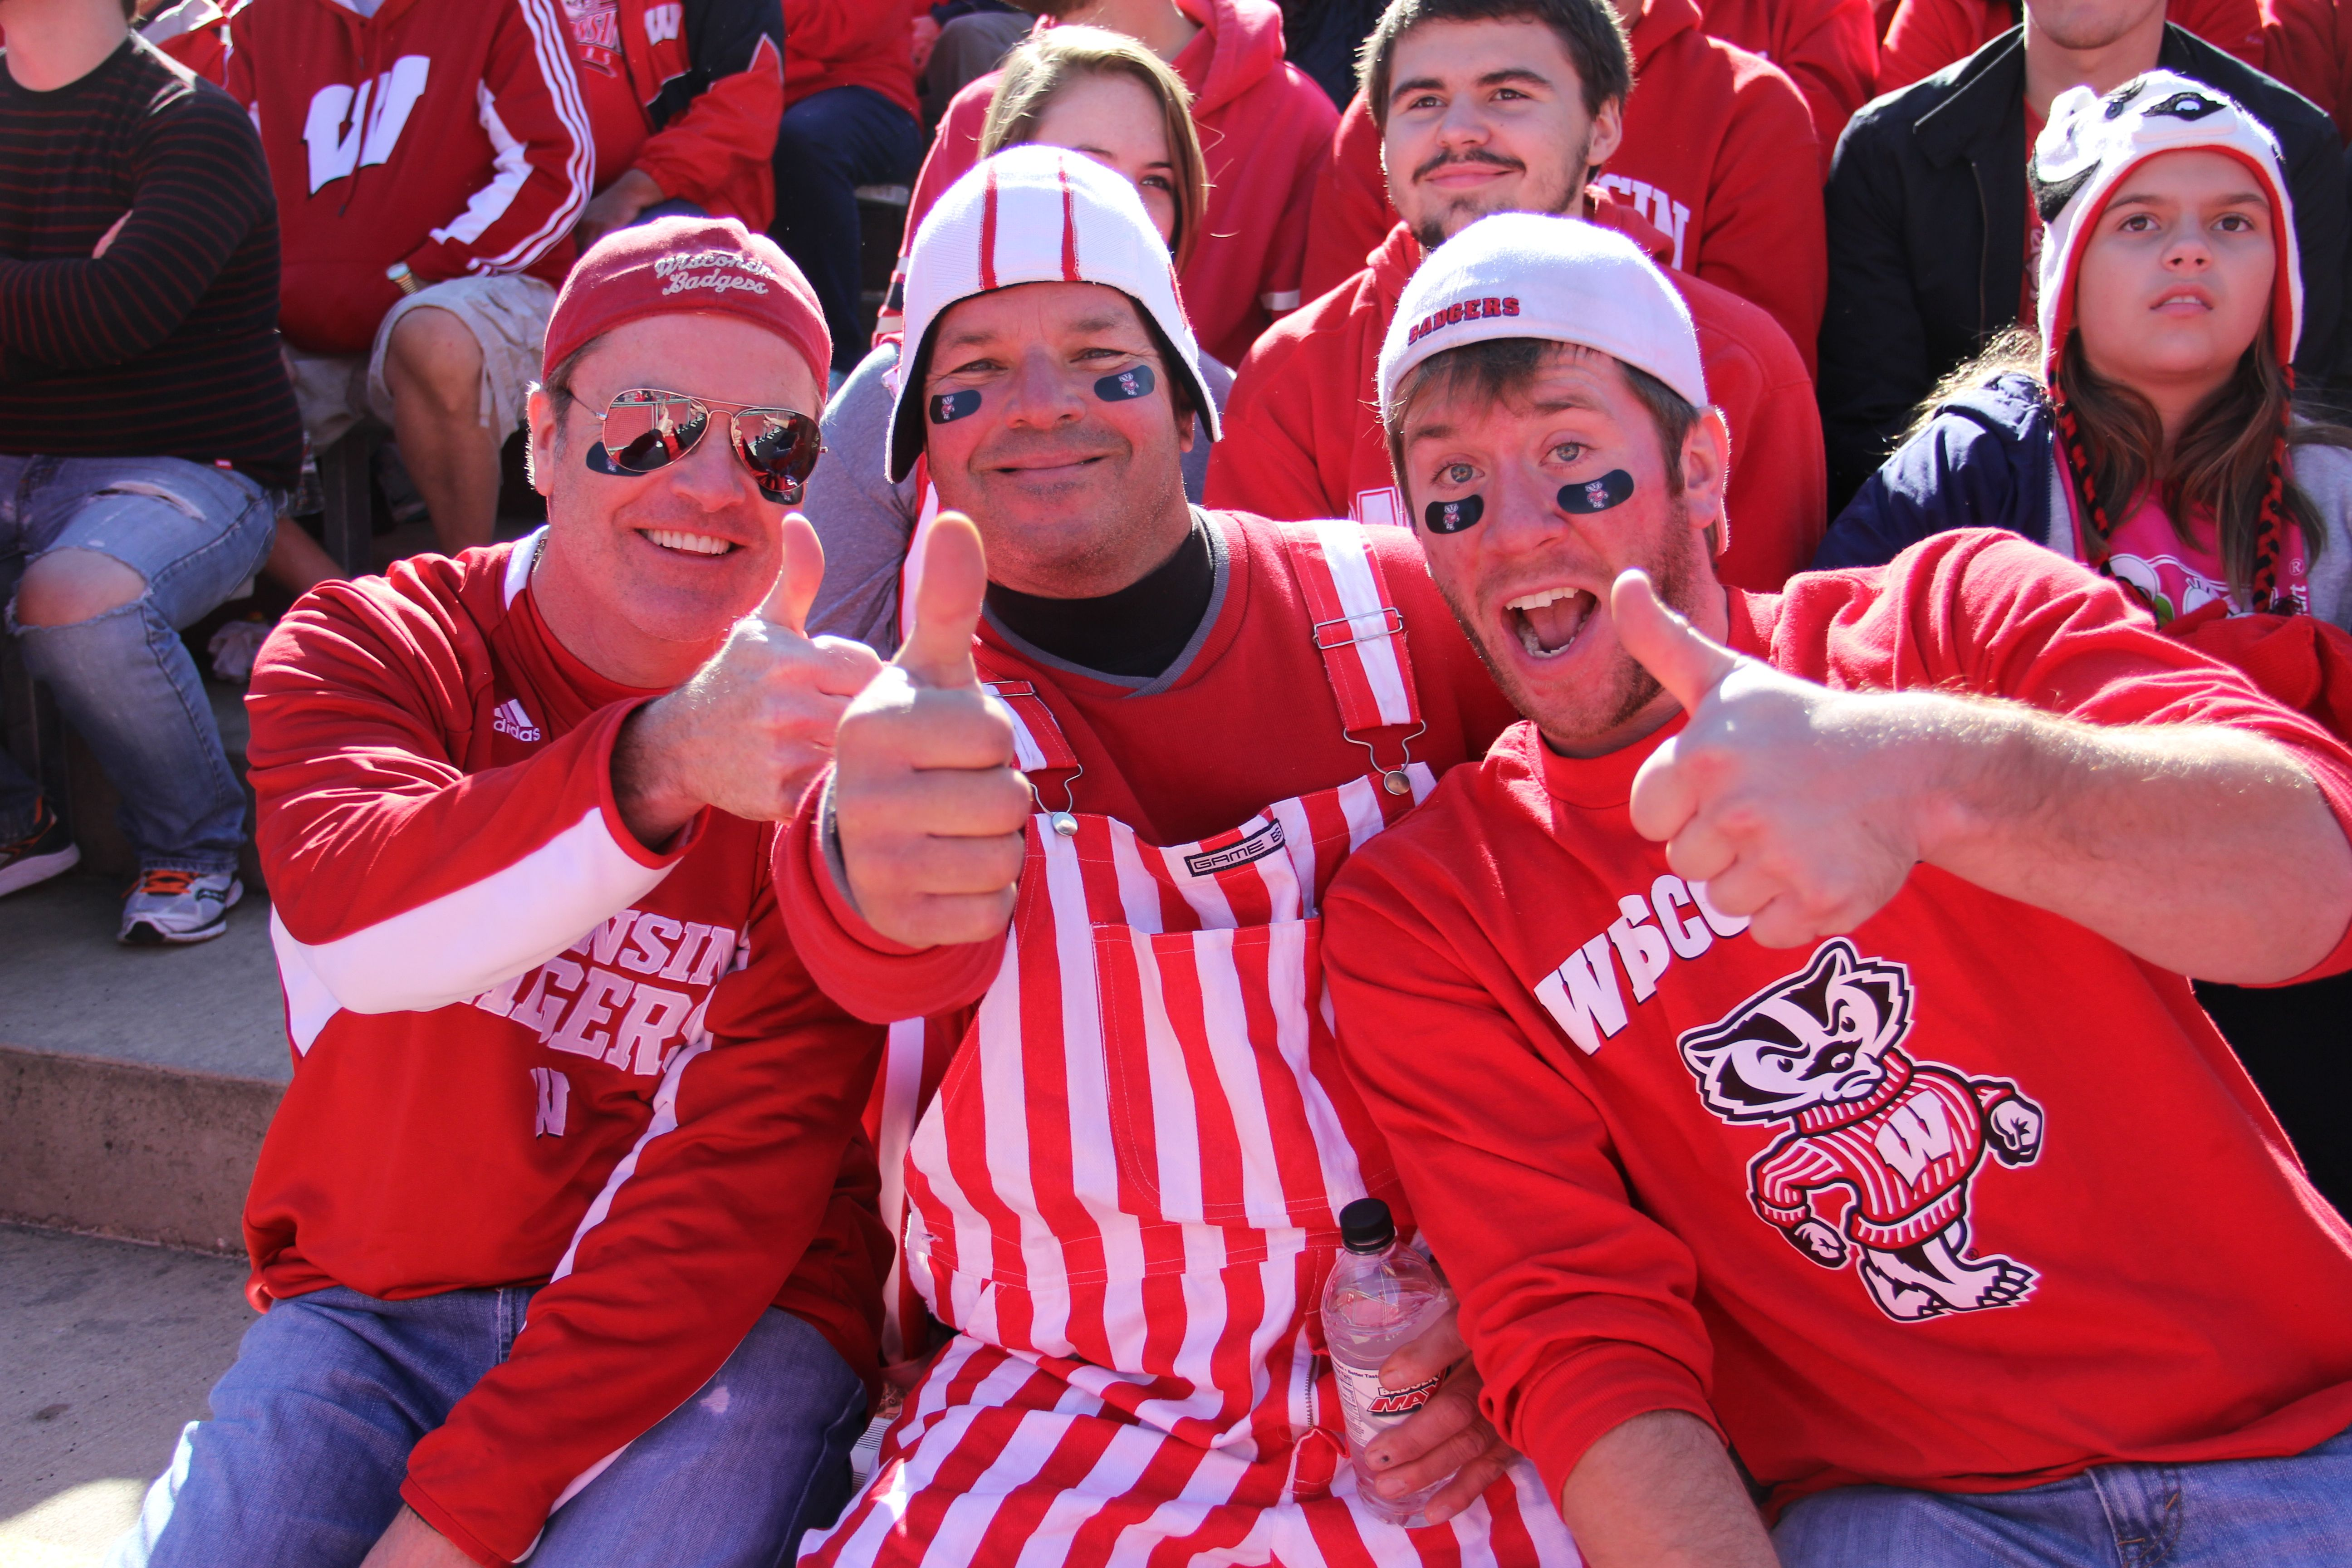 Badger fans at Wisconsin vs. Illinois football game Oct